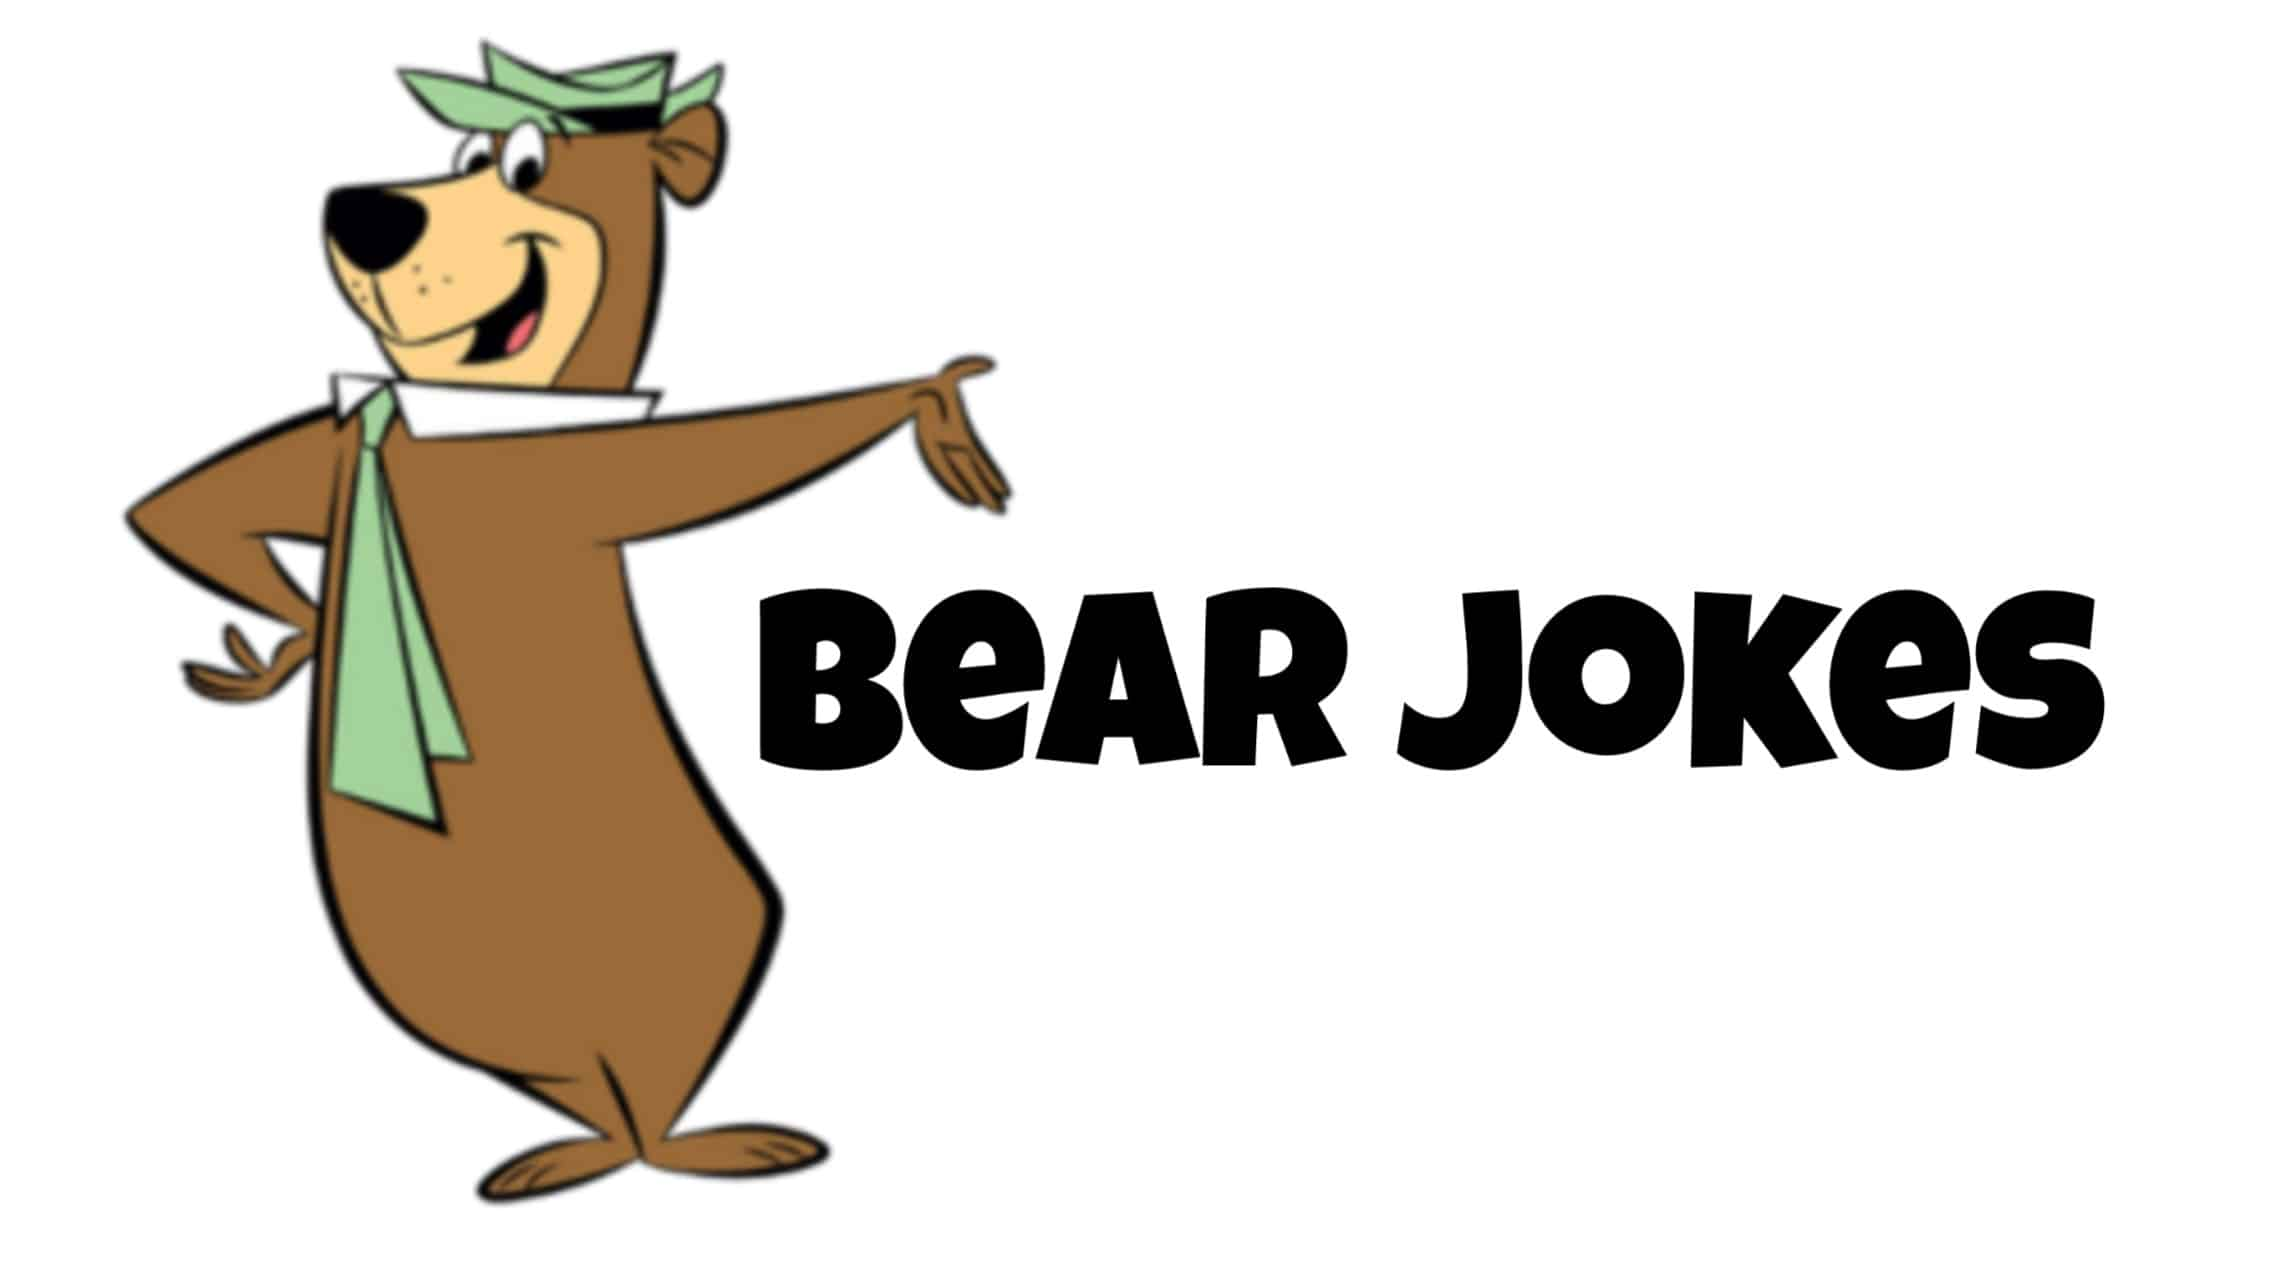 50+ Bear jokes for kids